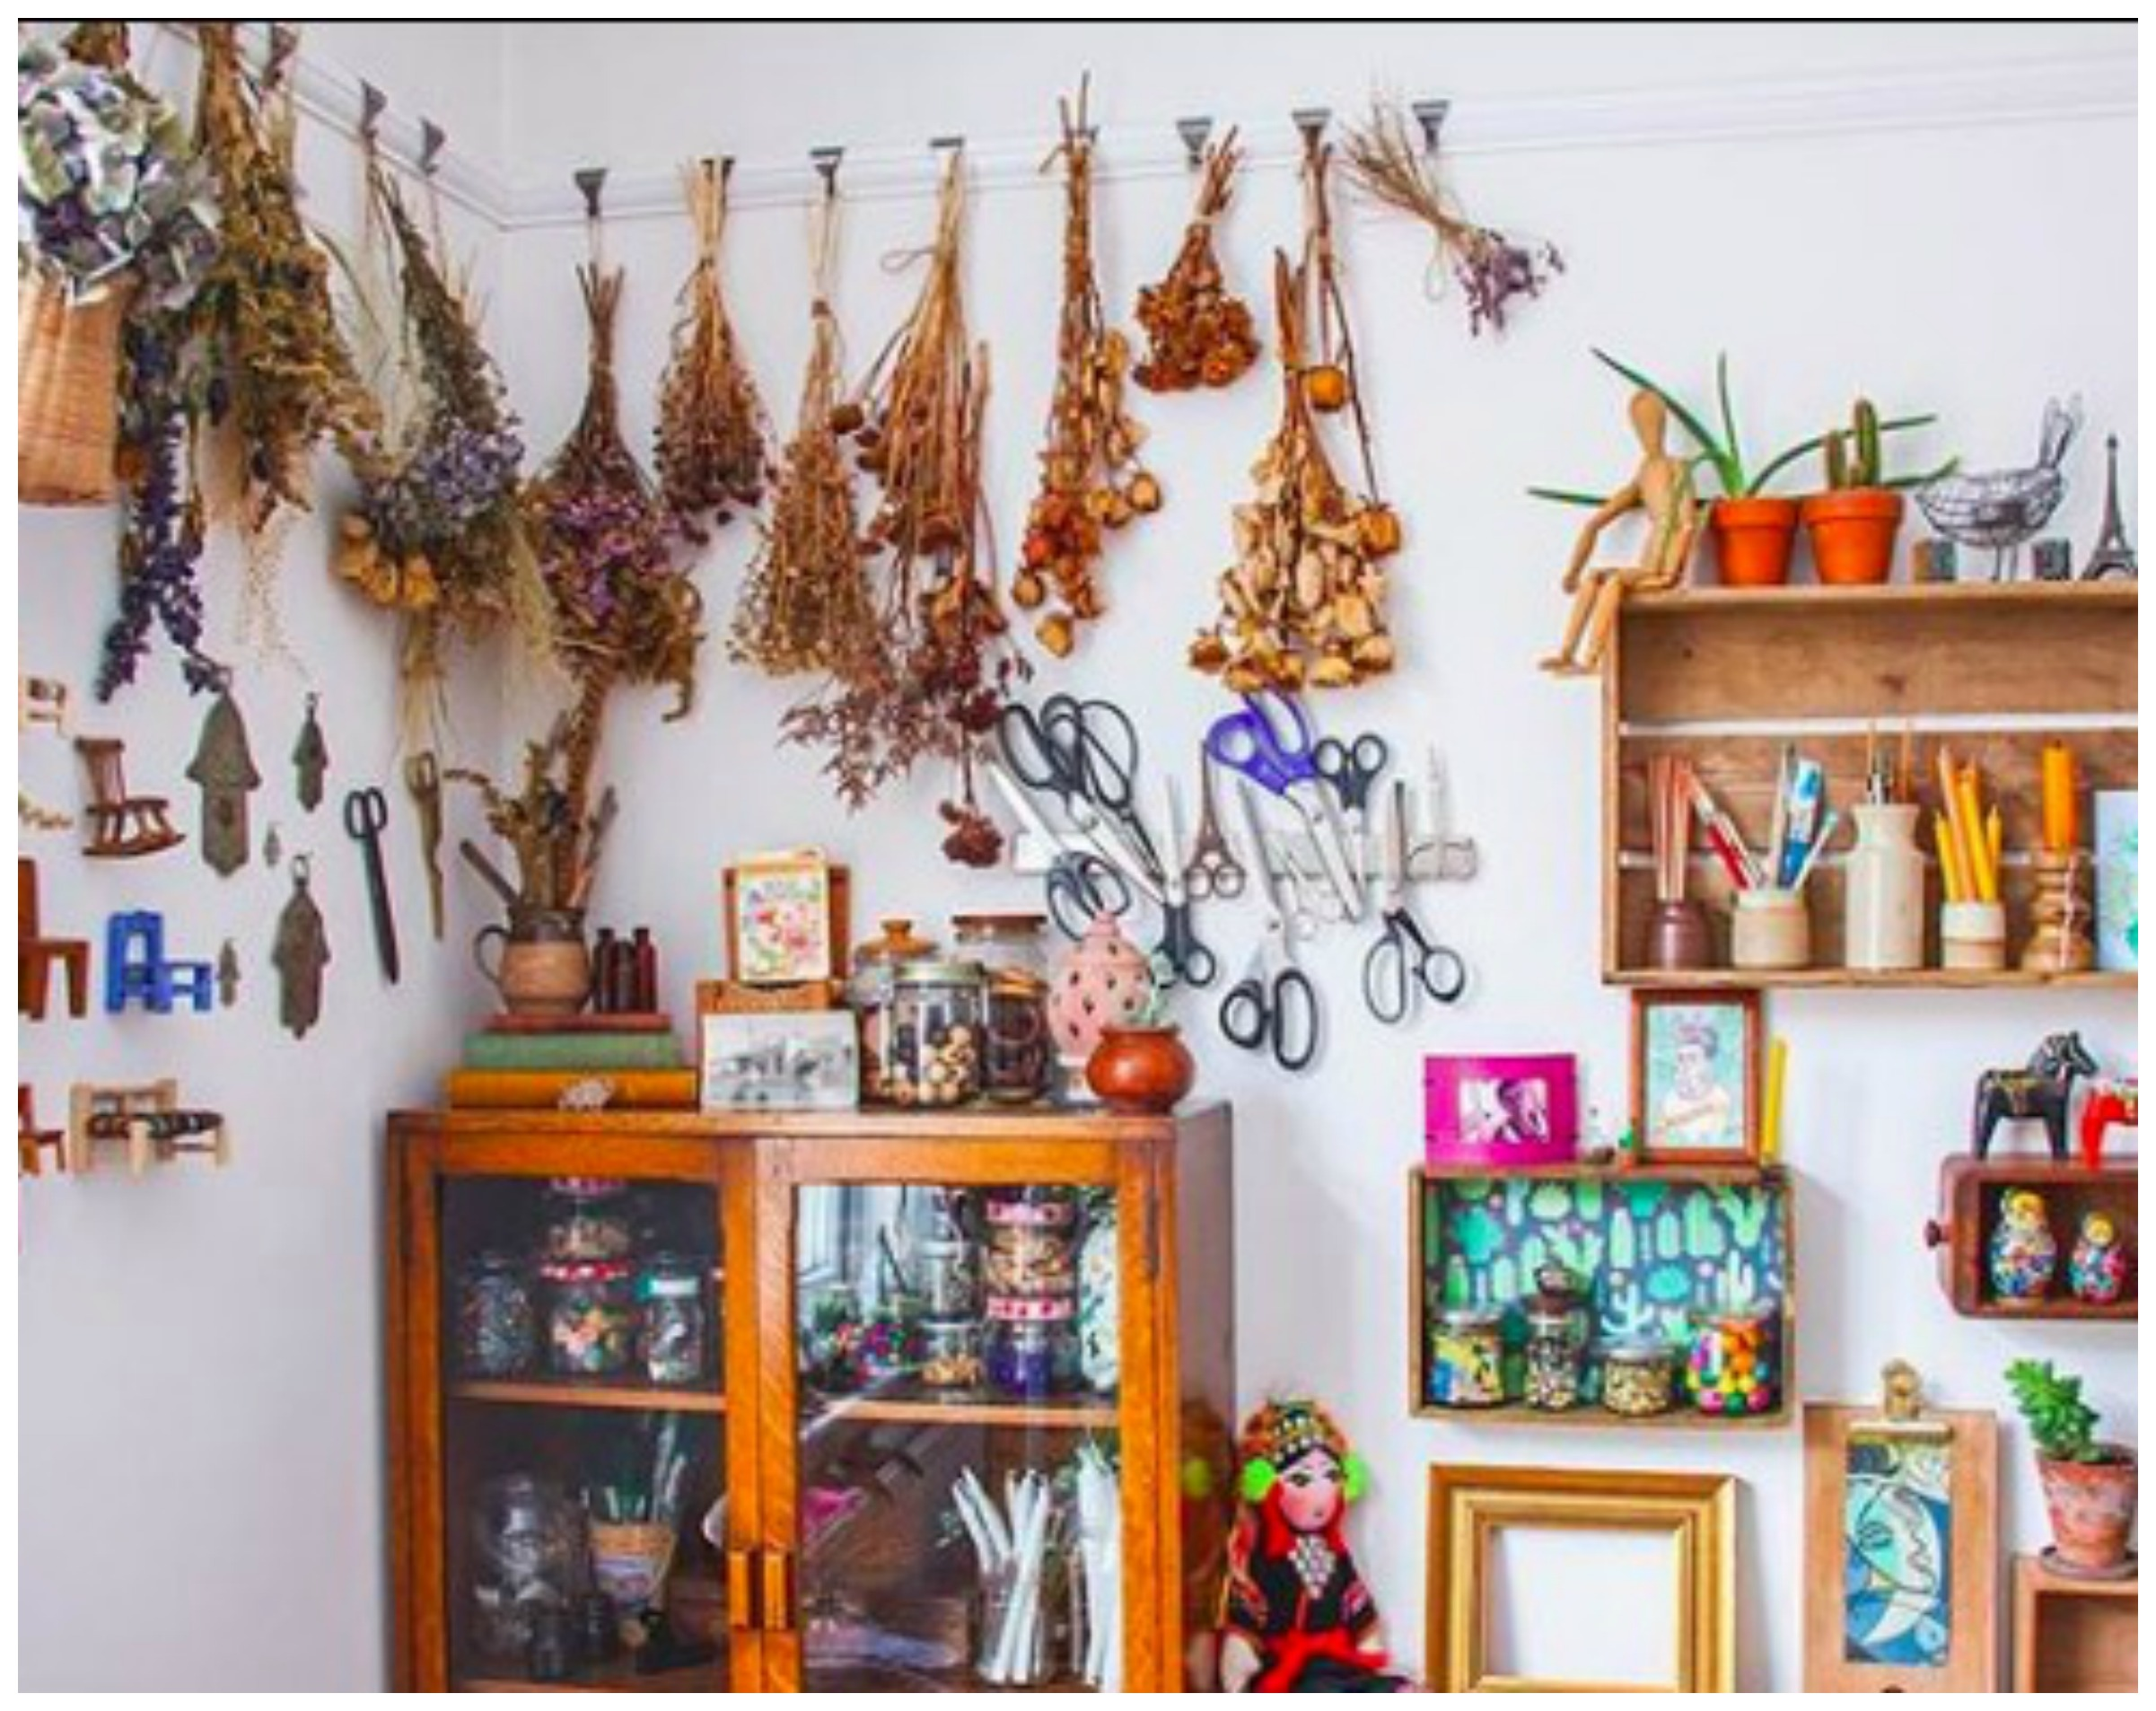 Home Tour: Betina's Colorful Boho Home and Craft Studio Full of Collections and Vintage Finds